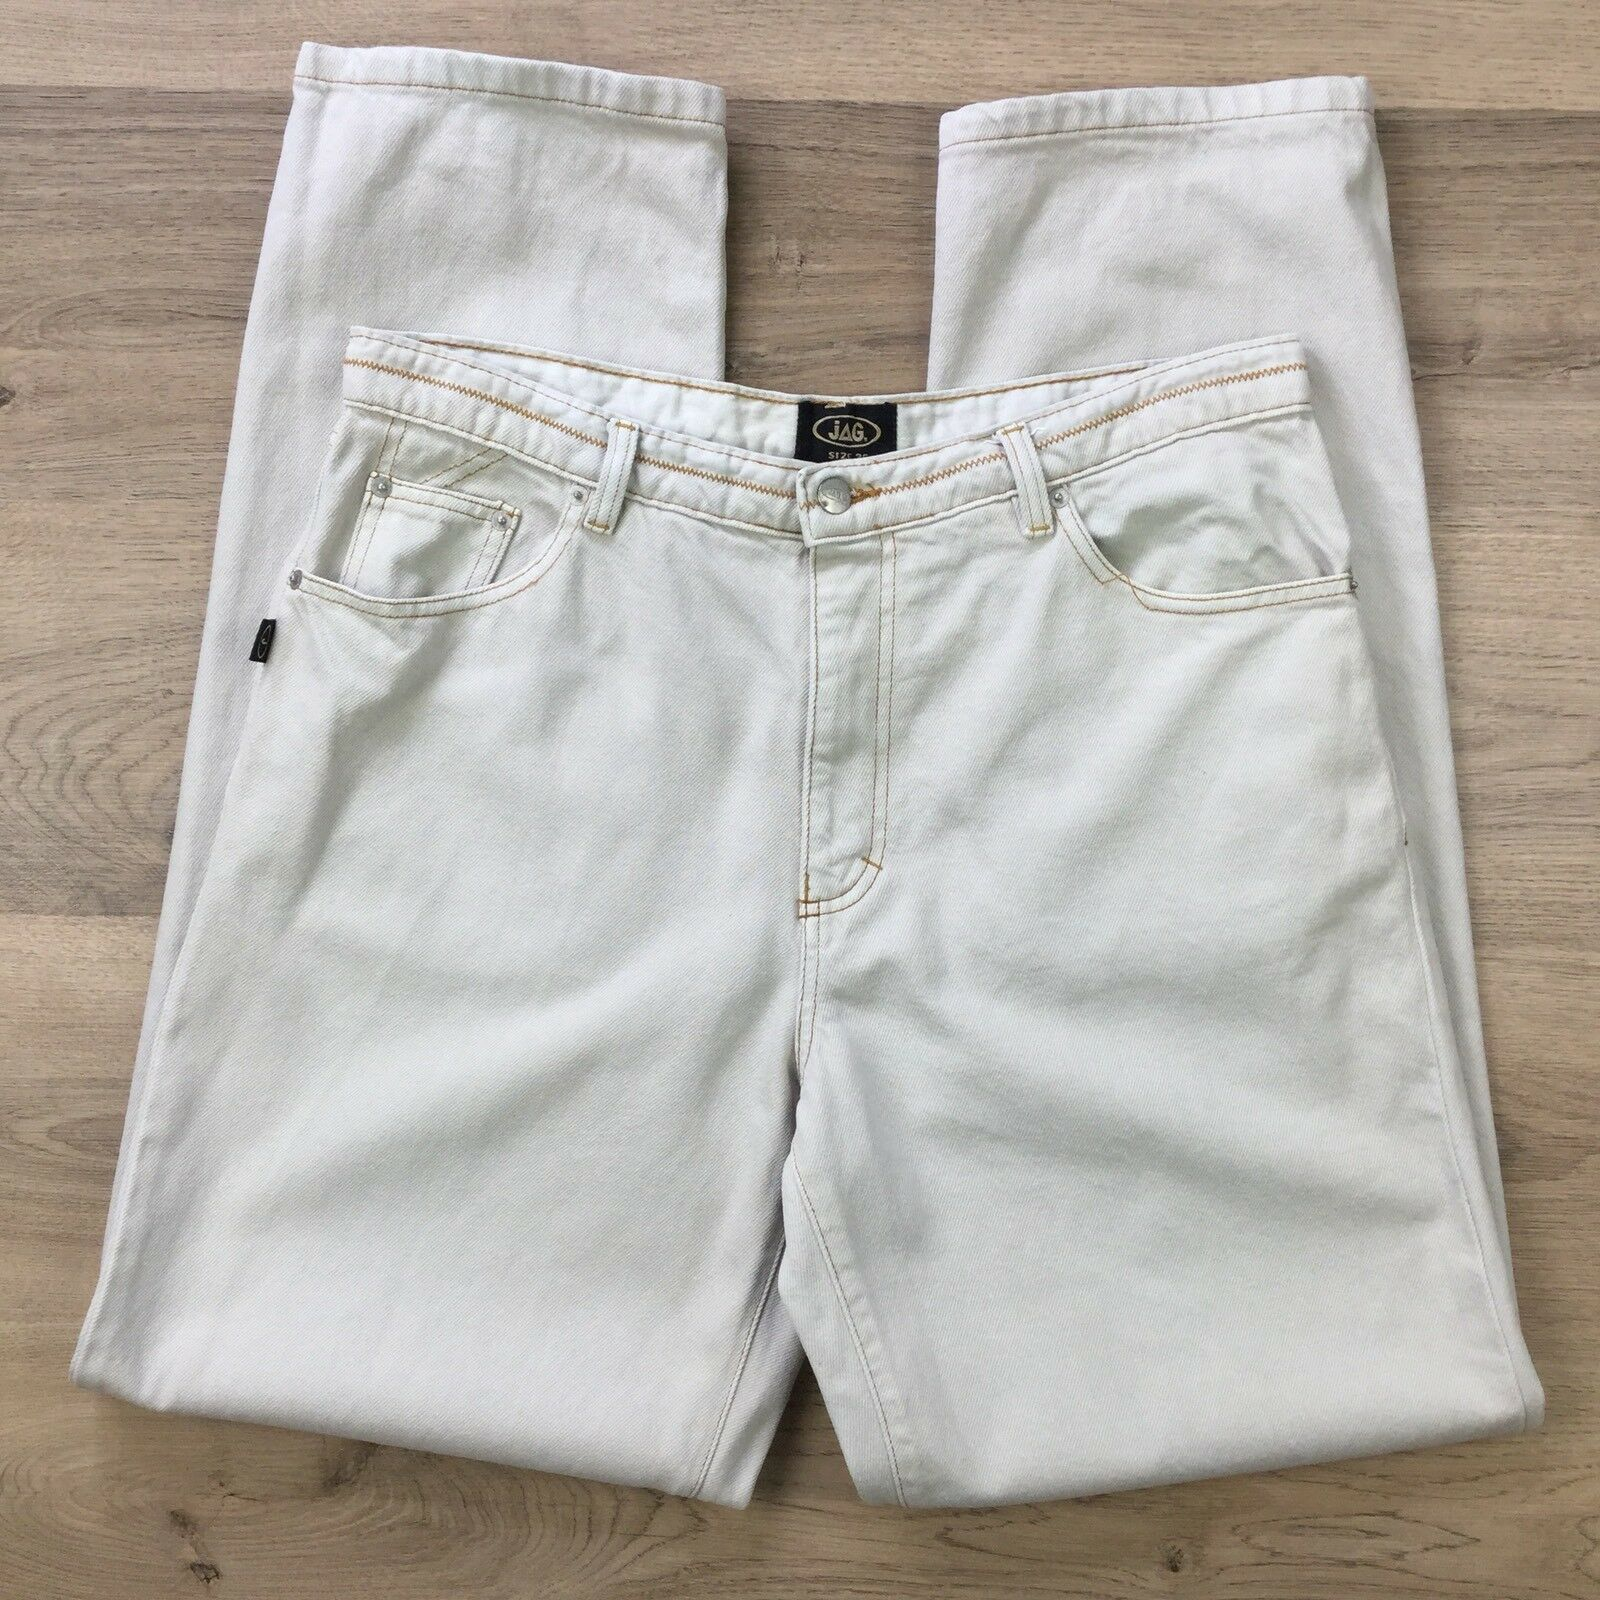 Jag Men's Jeans Western Styling Tapered Size 36  L33.5 (BO10)